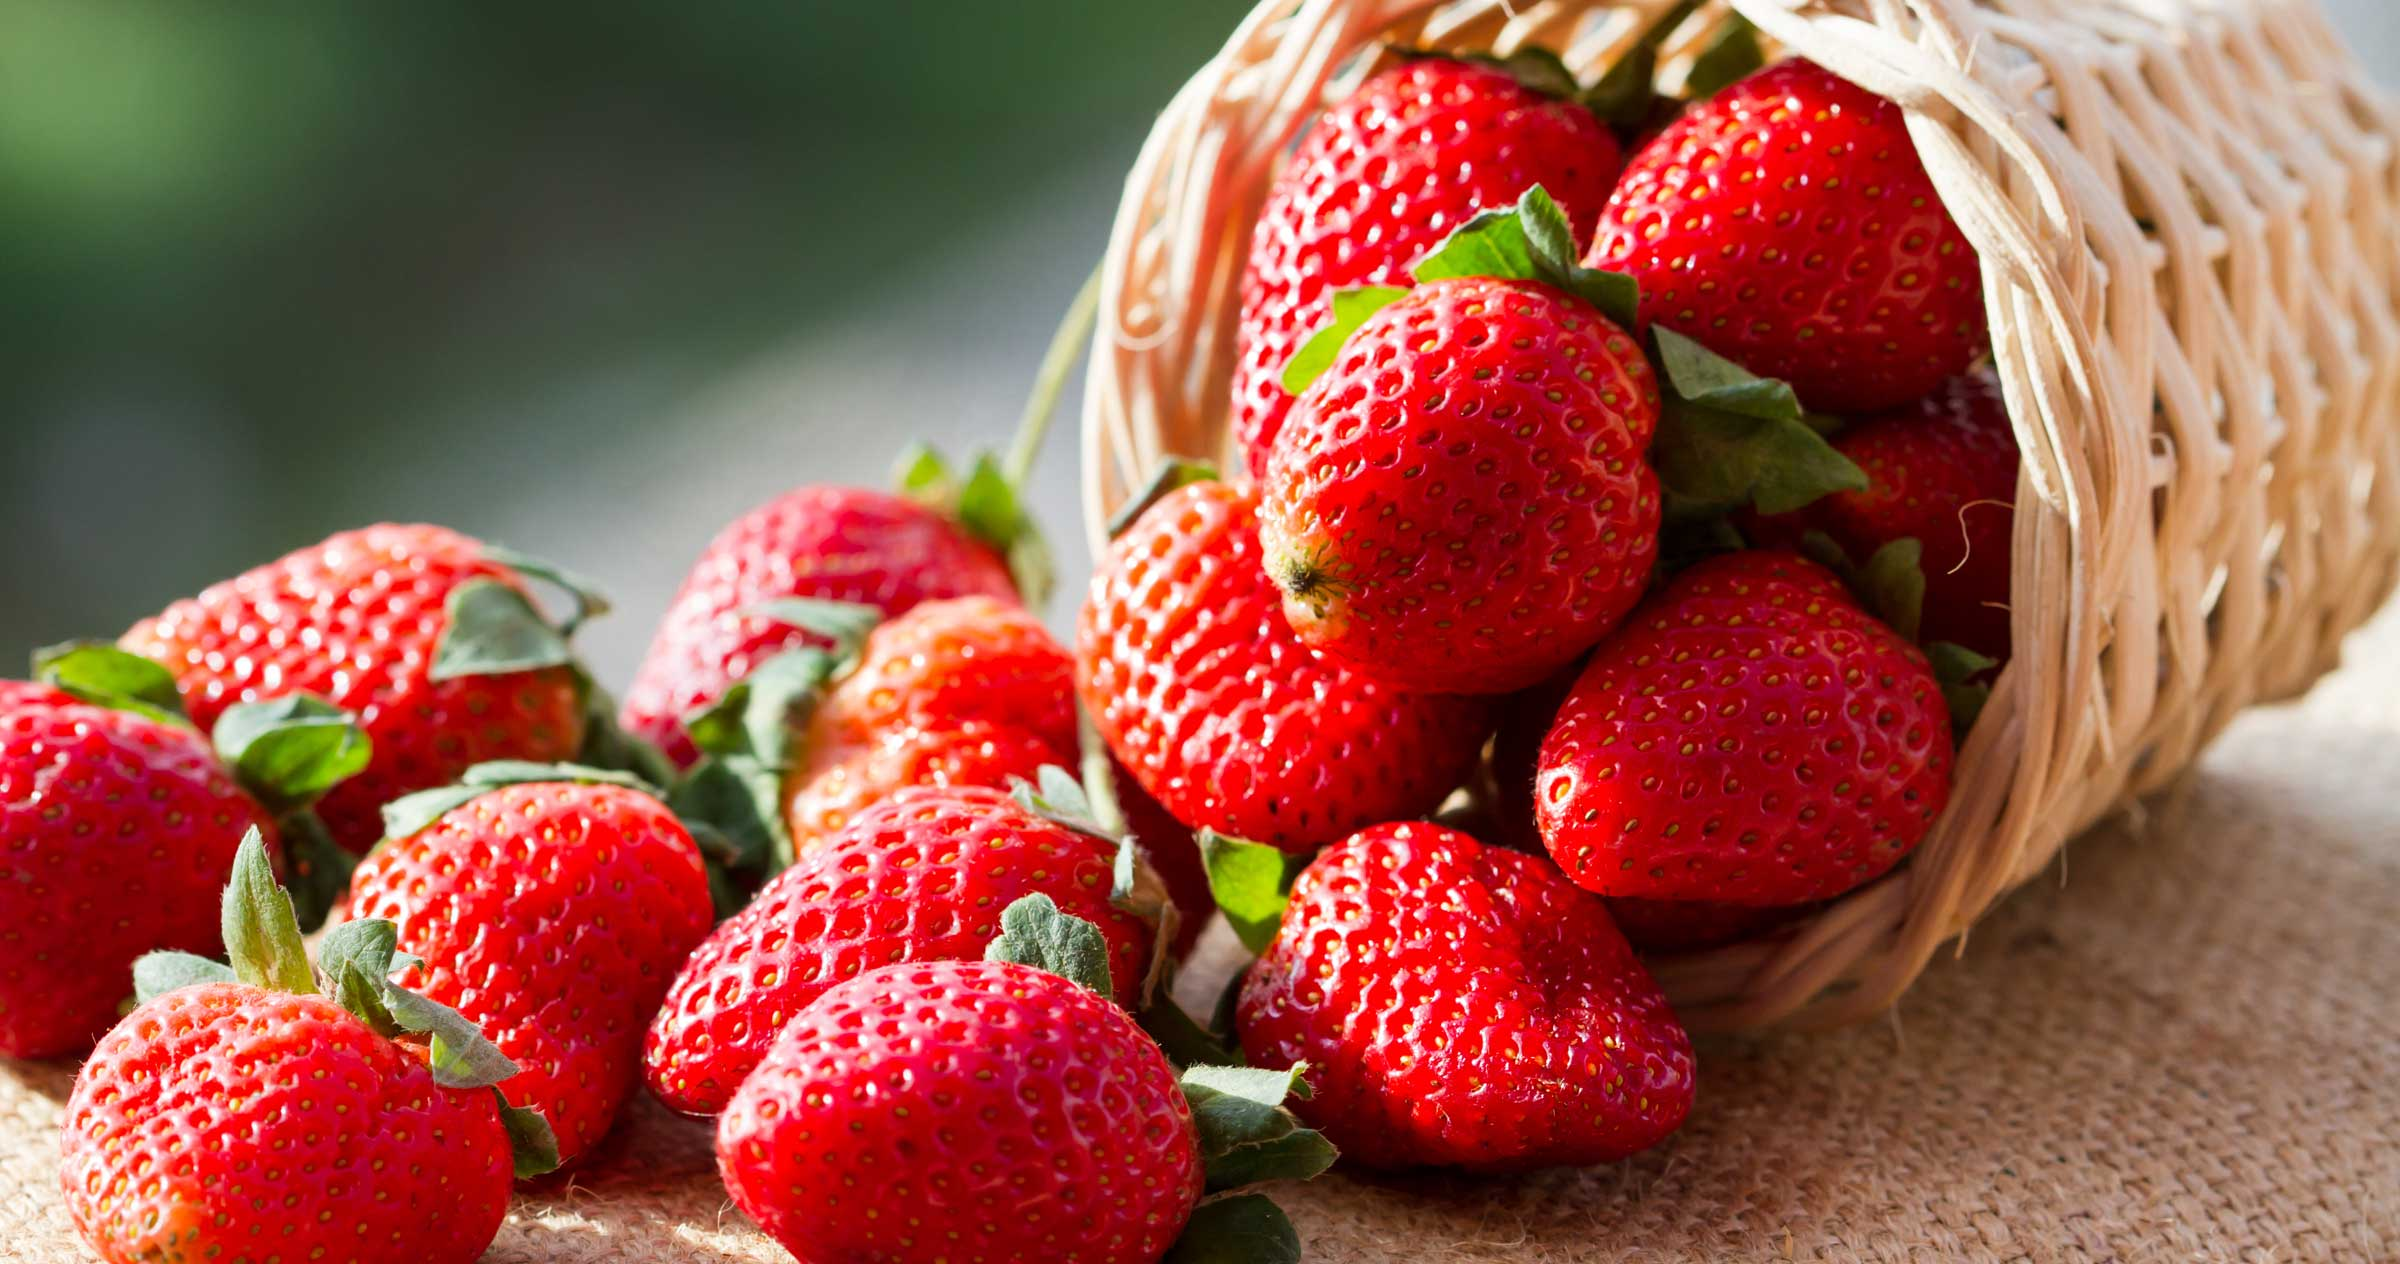 Strawberries (250g pack)